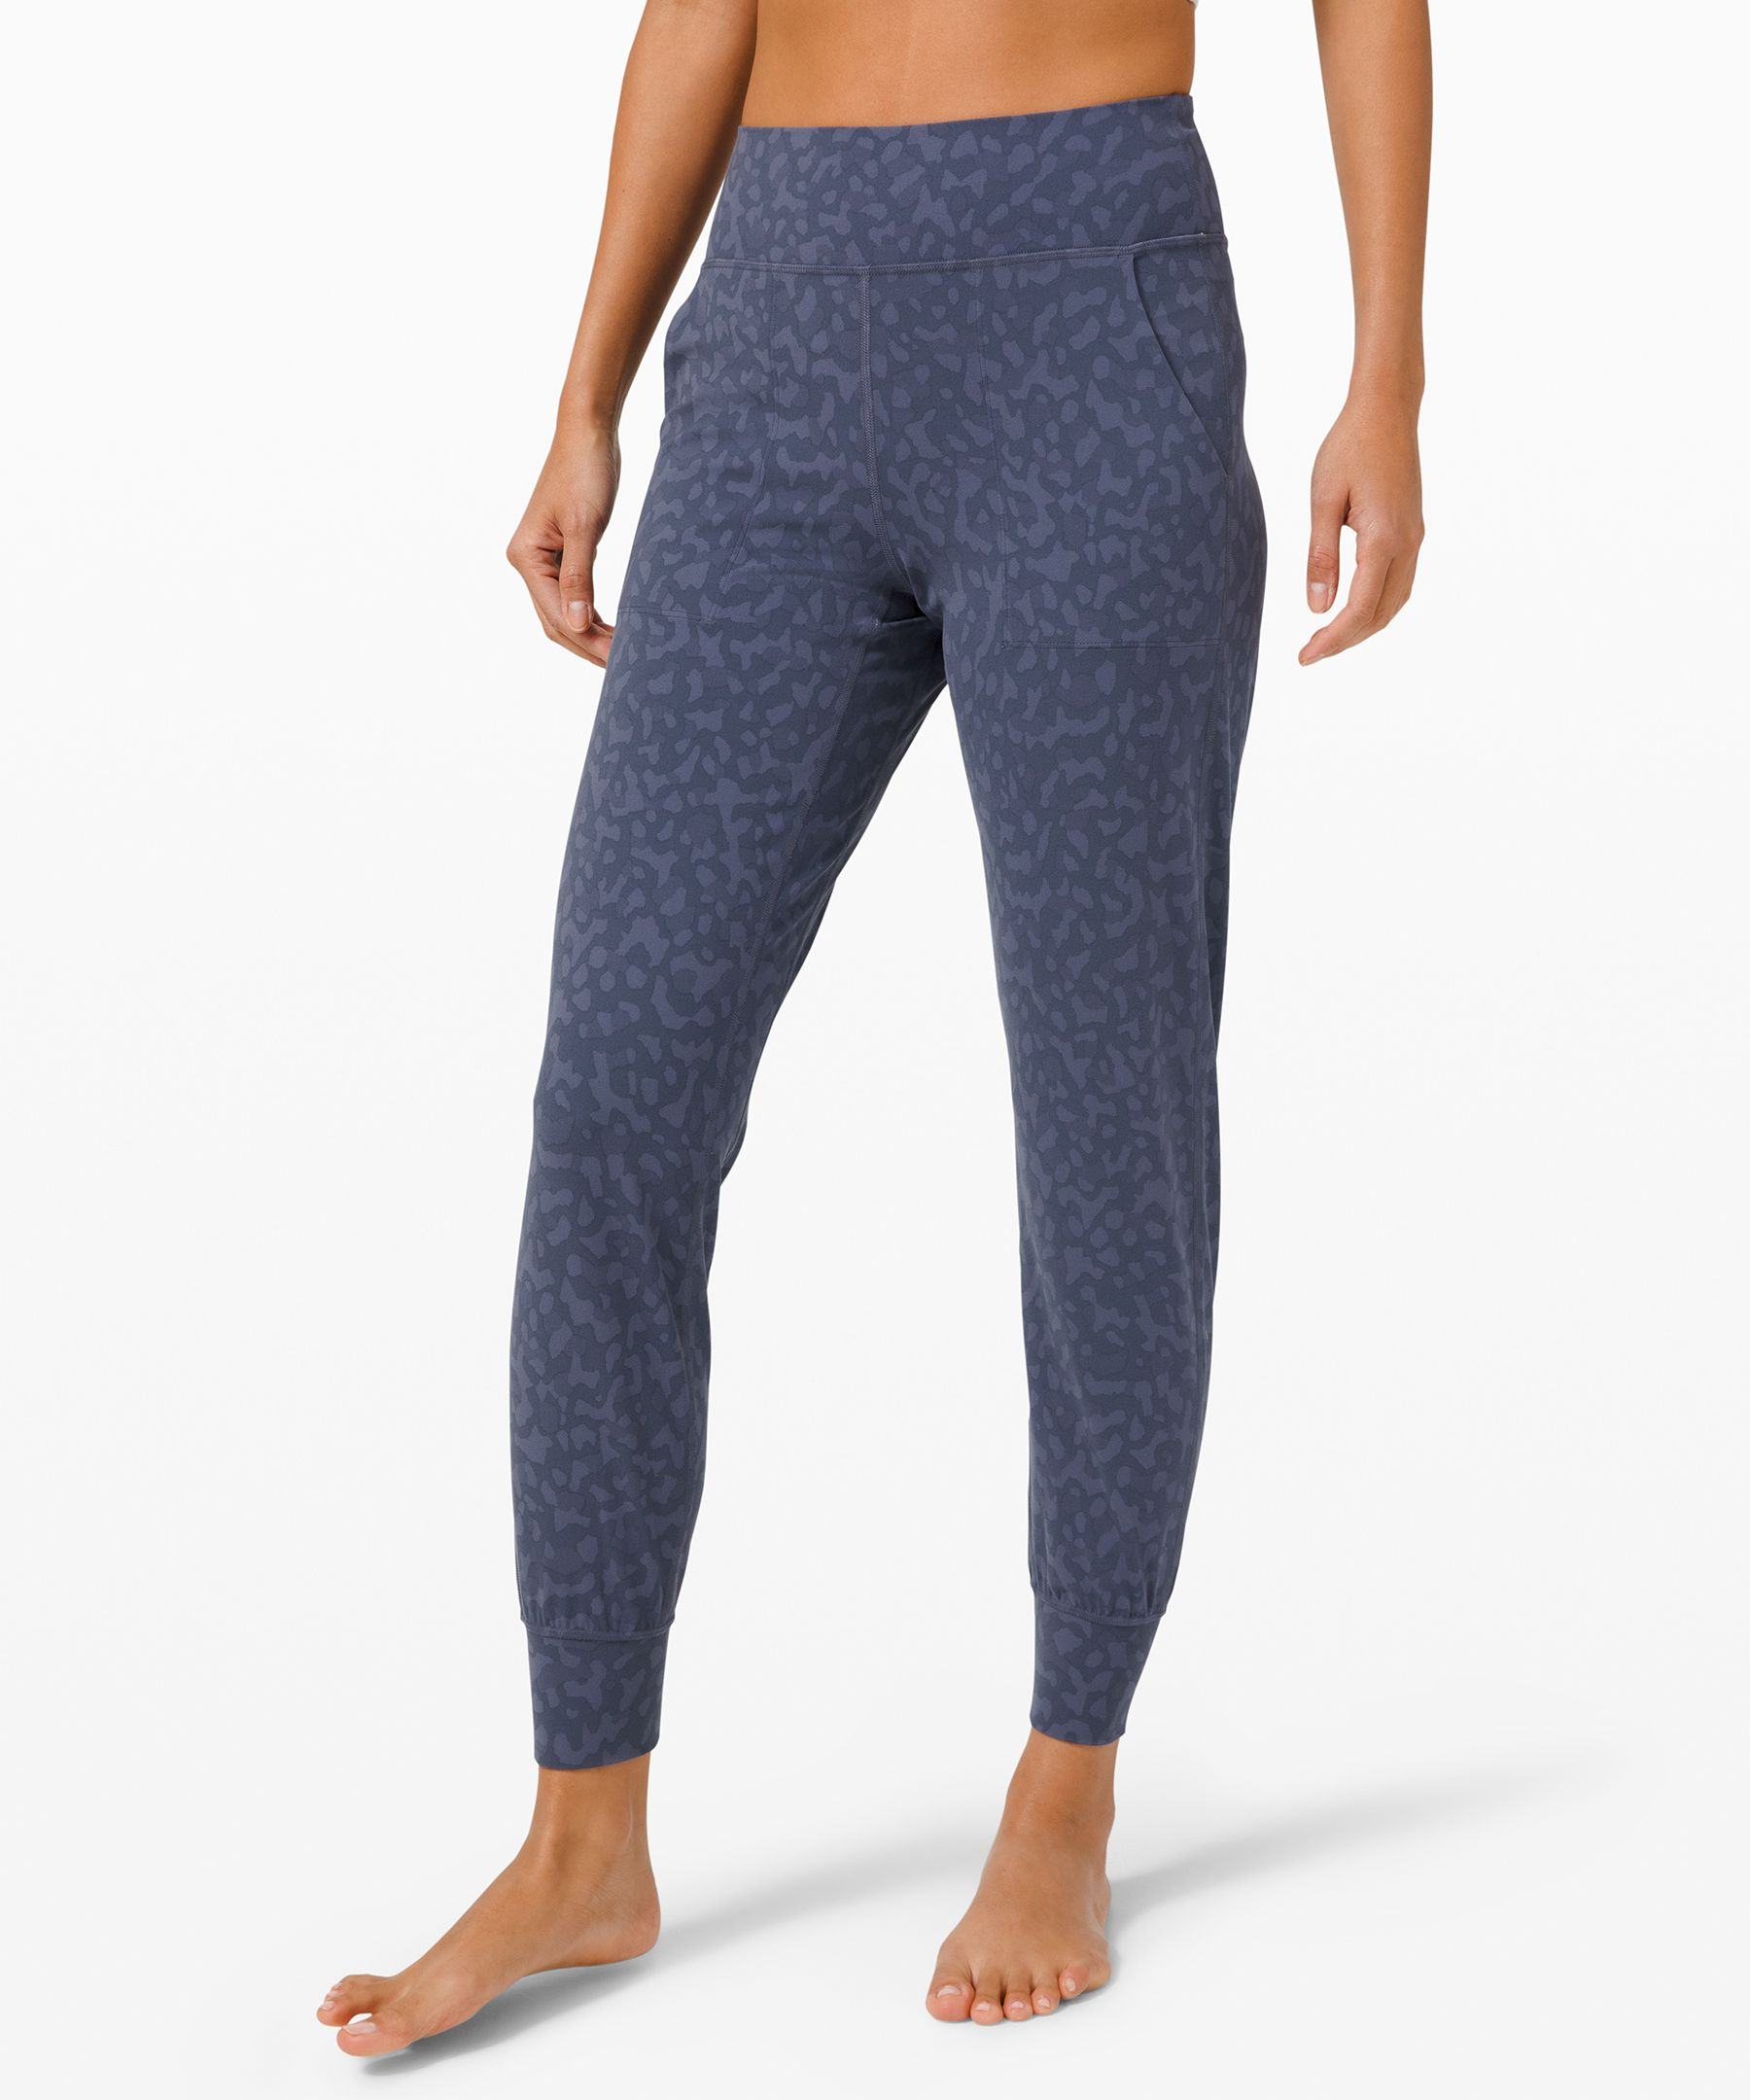 Your practice has never felt so good. These buttery-soft yoga joggers minimize distractions and maximize comfort.